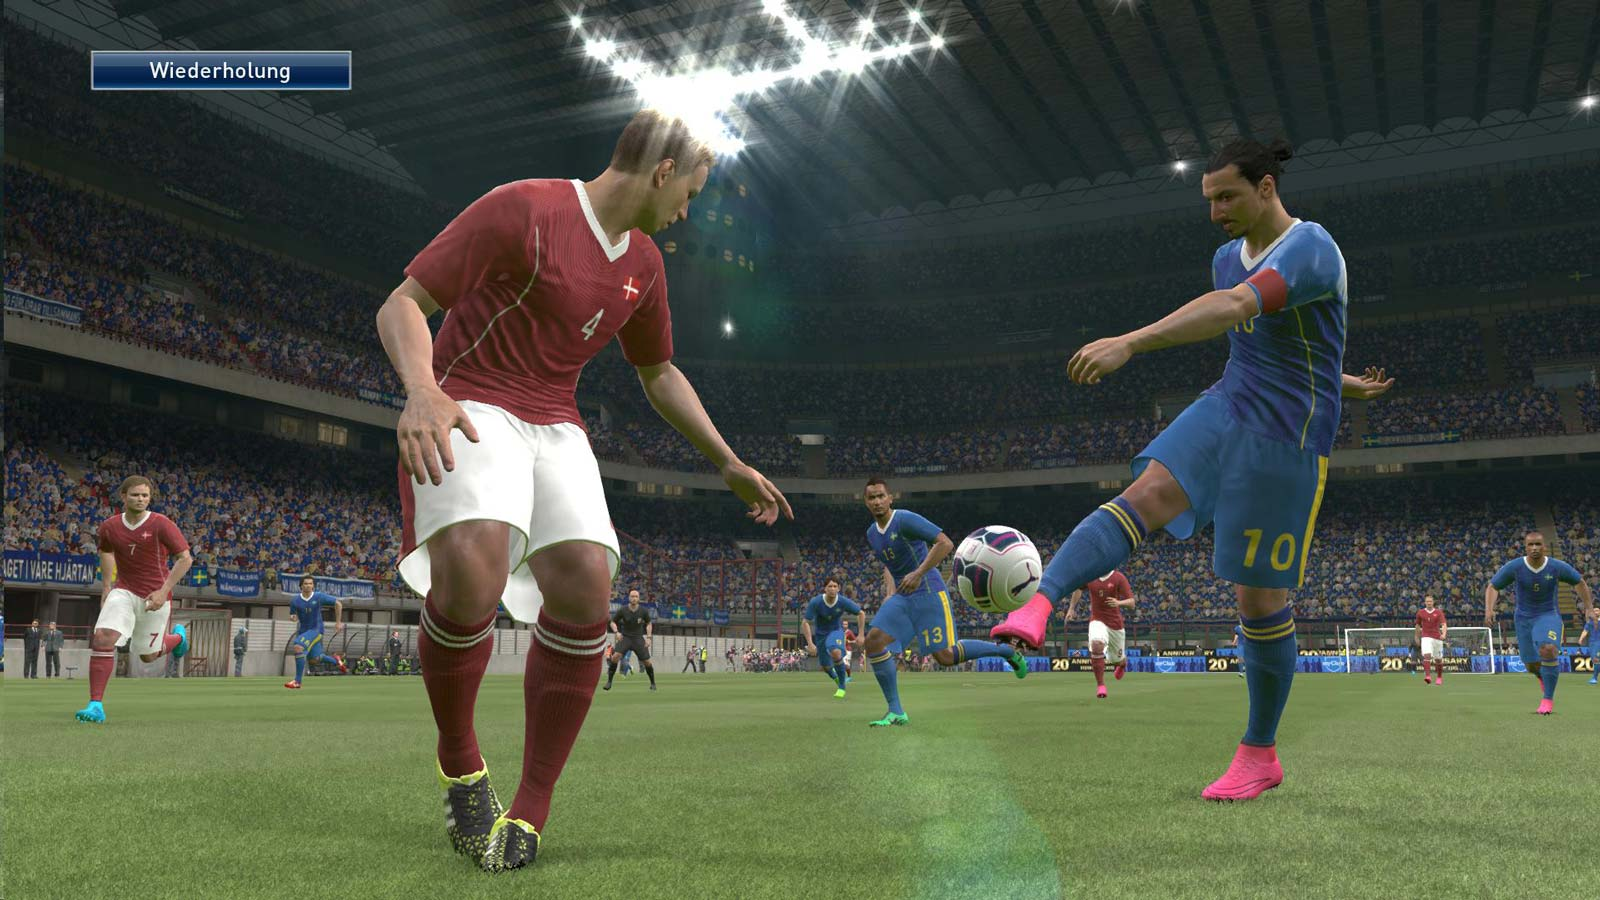 pes-2016-pc-version-screenshots-5.jpg